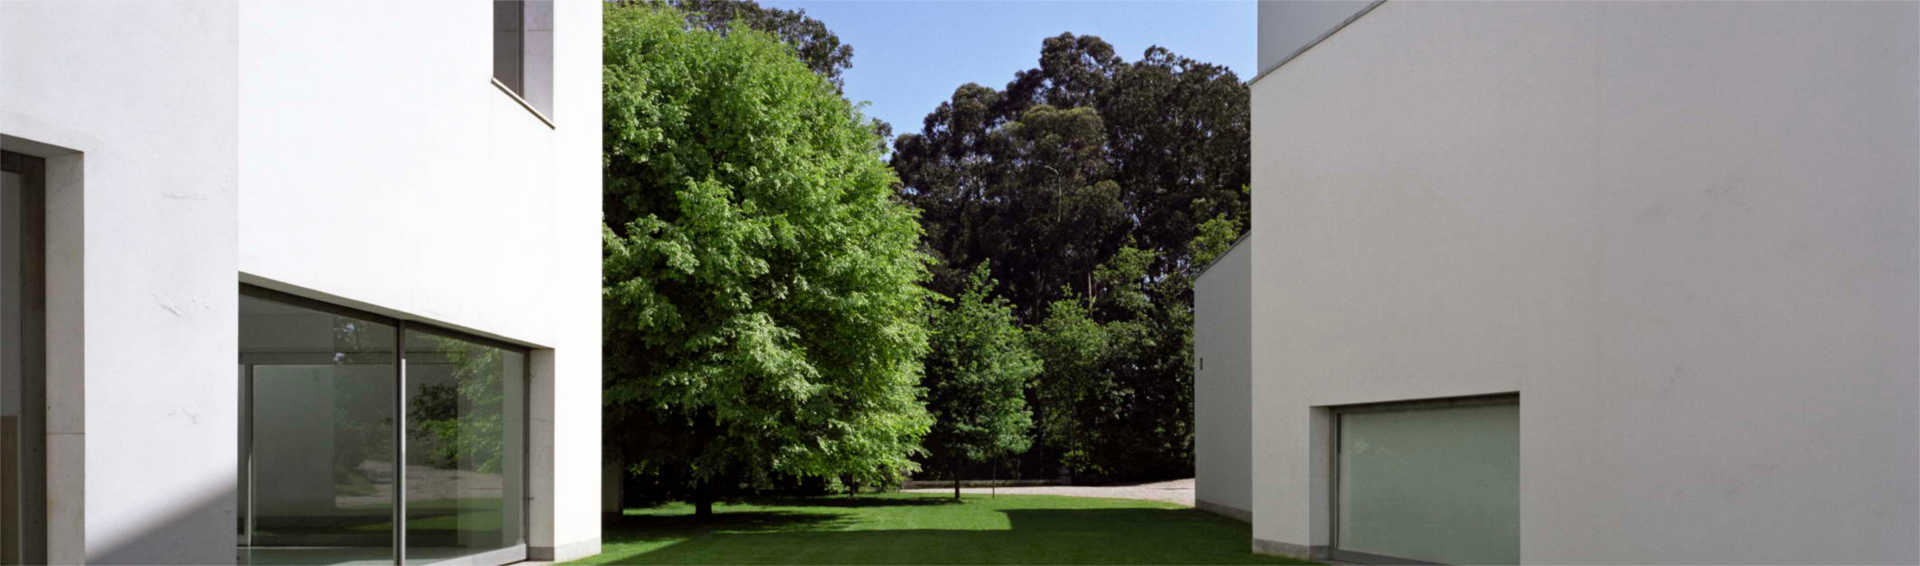 Serralves Foundation - image 4